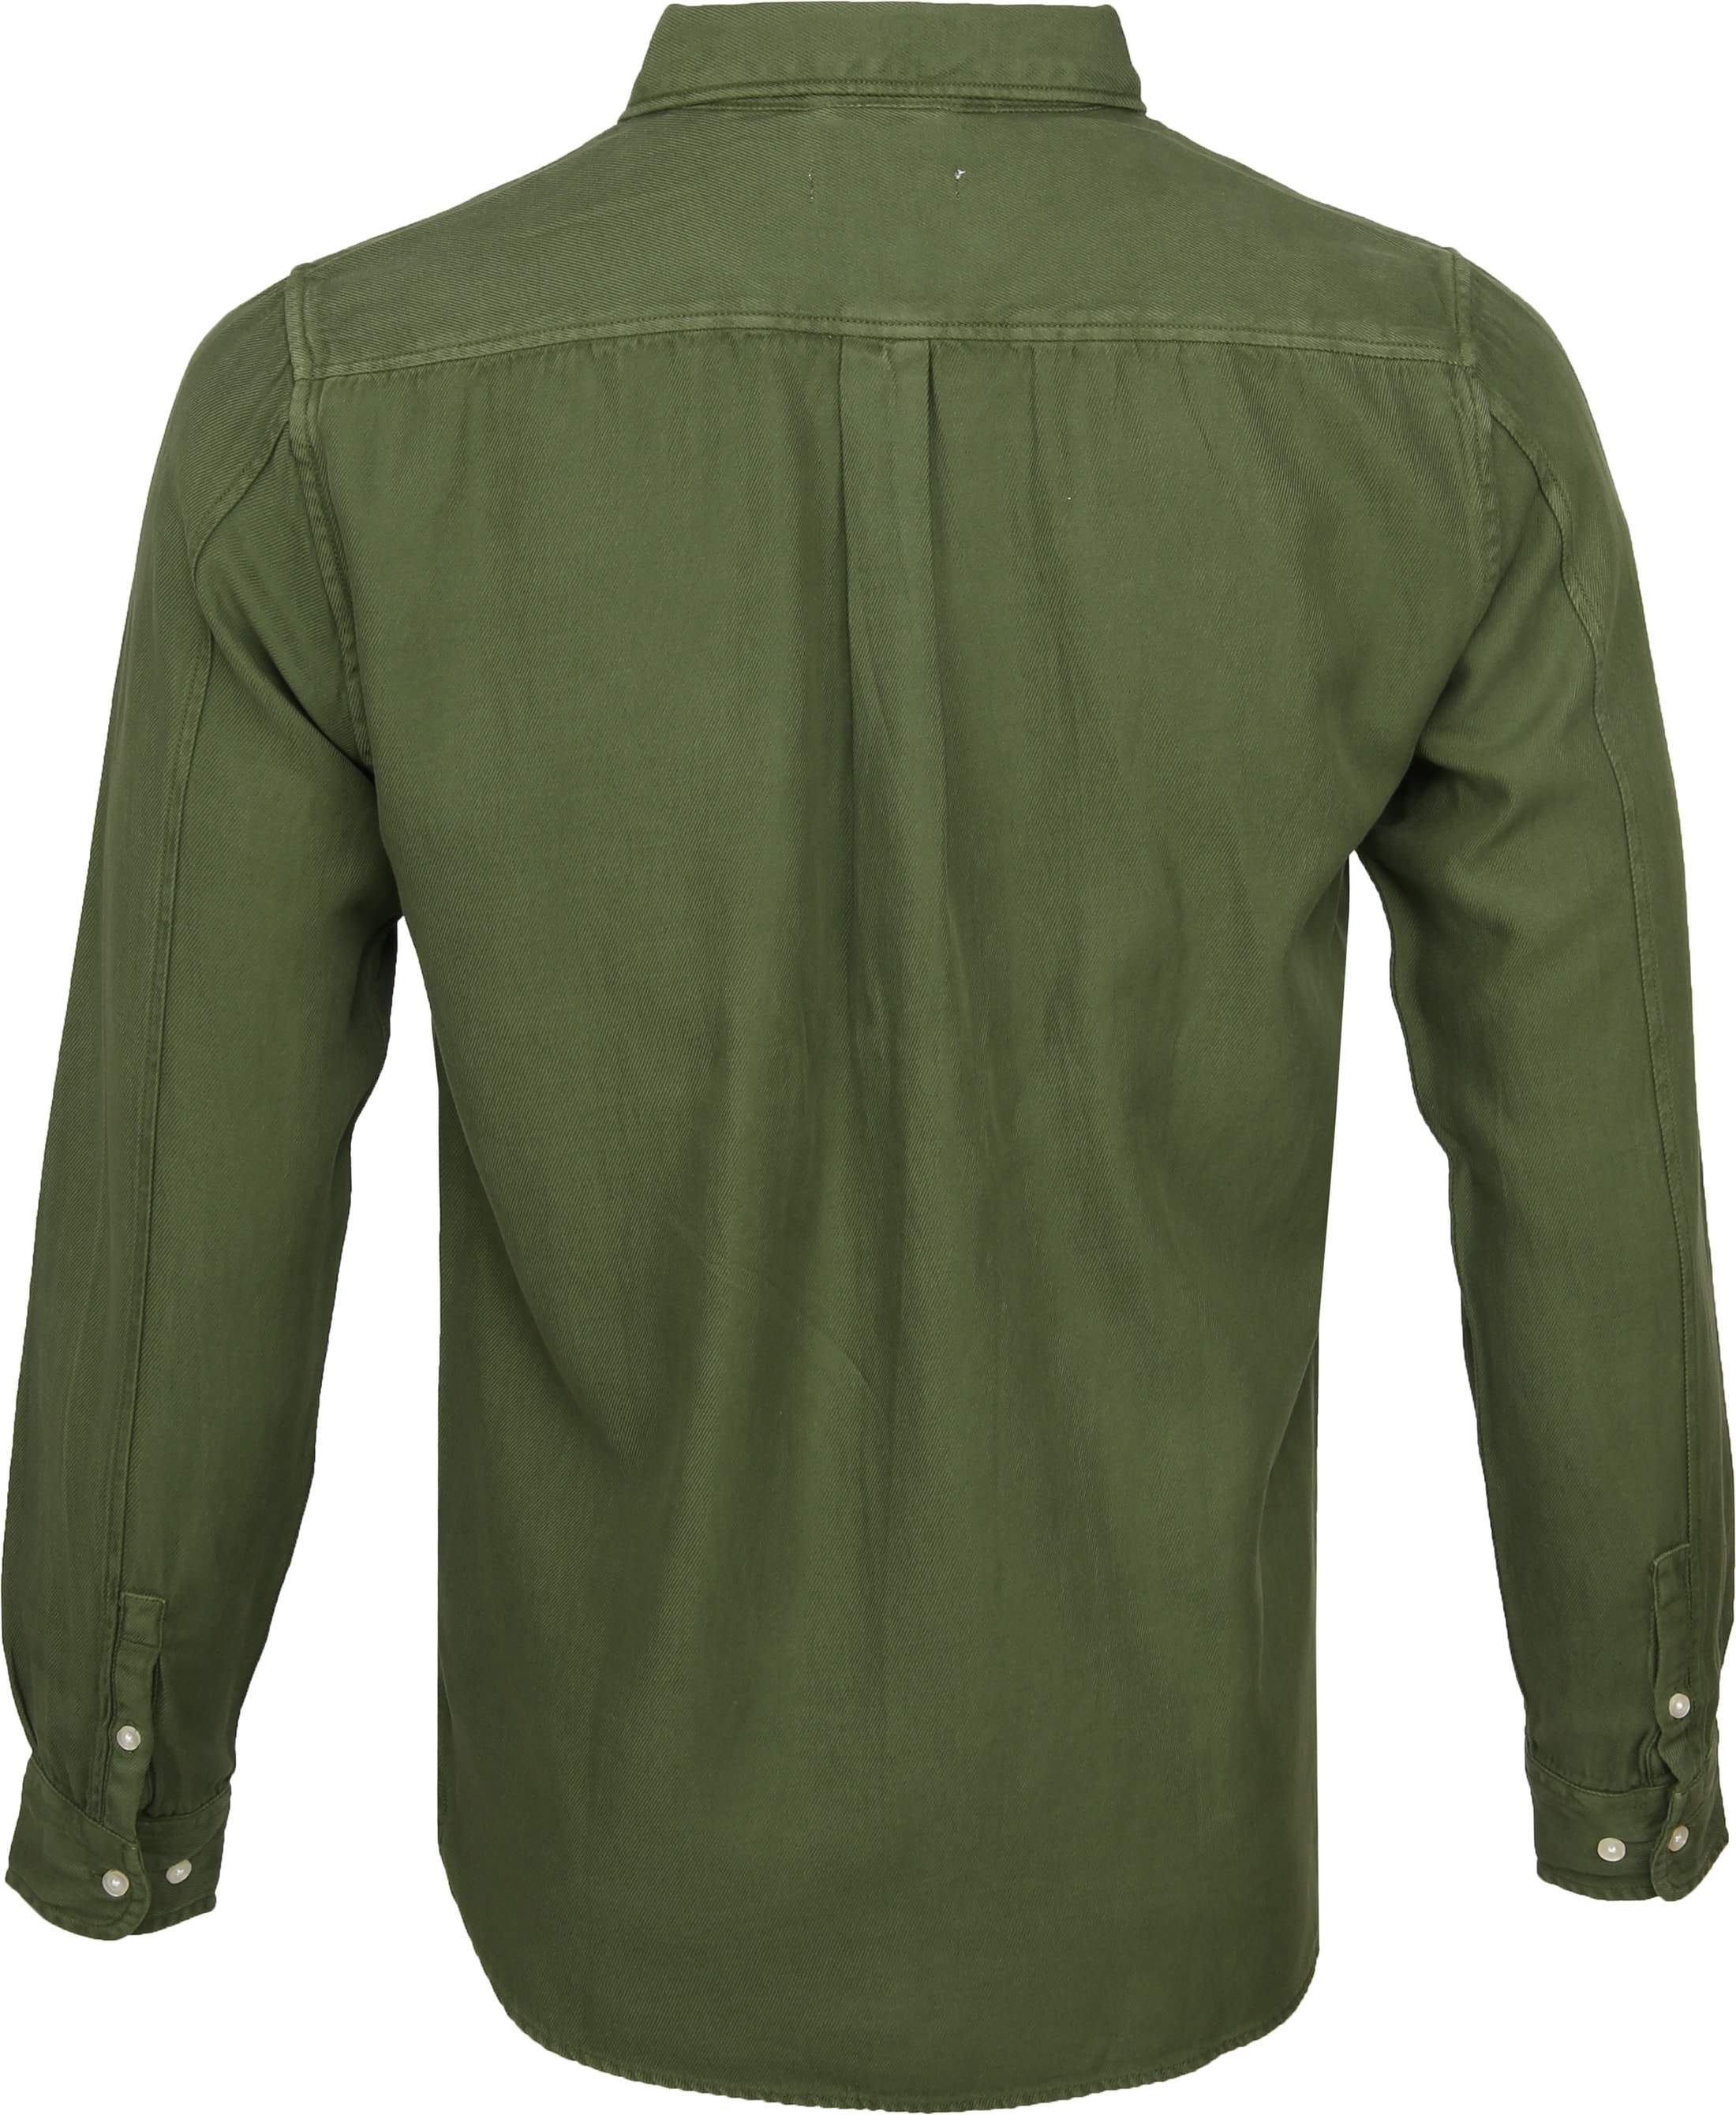 KnowledgeCotton Apparel Overhemd Twill Groen foto 3